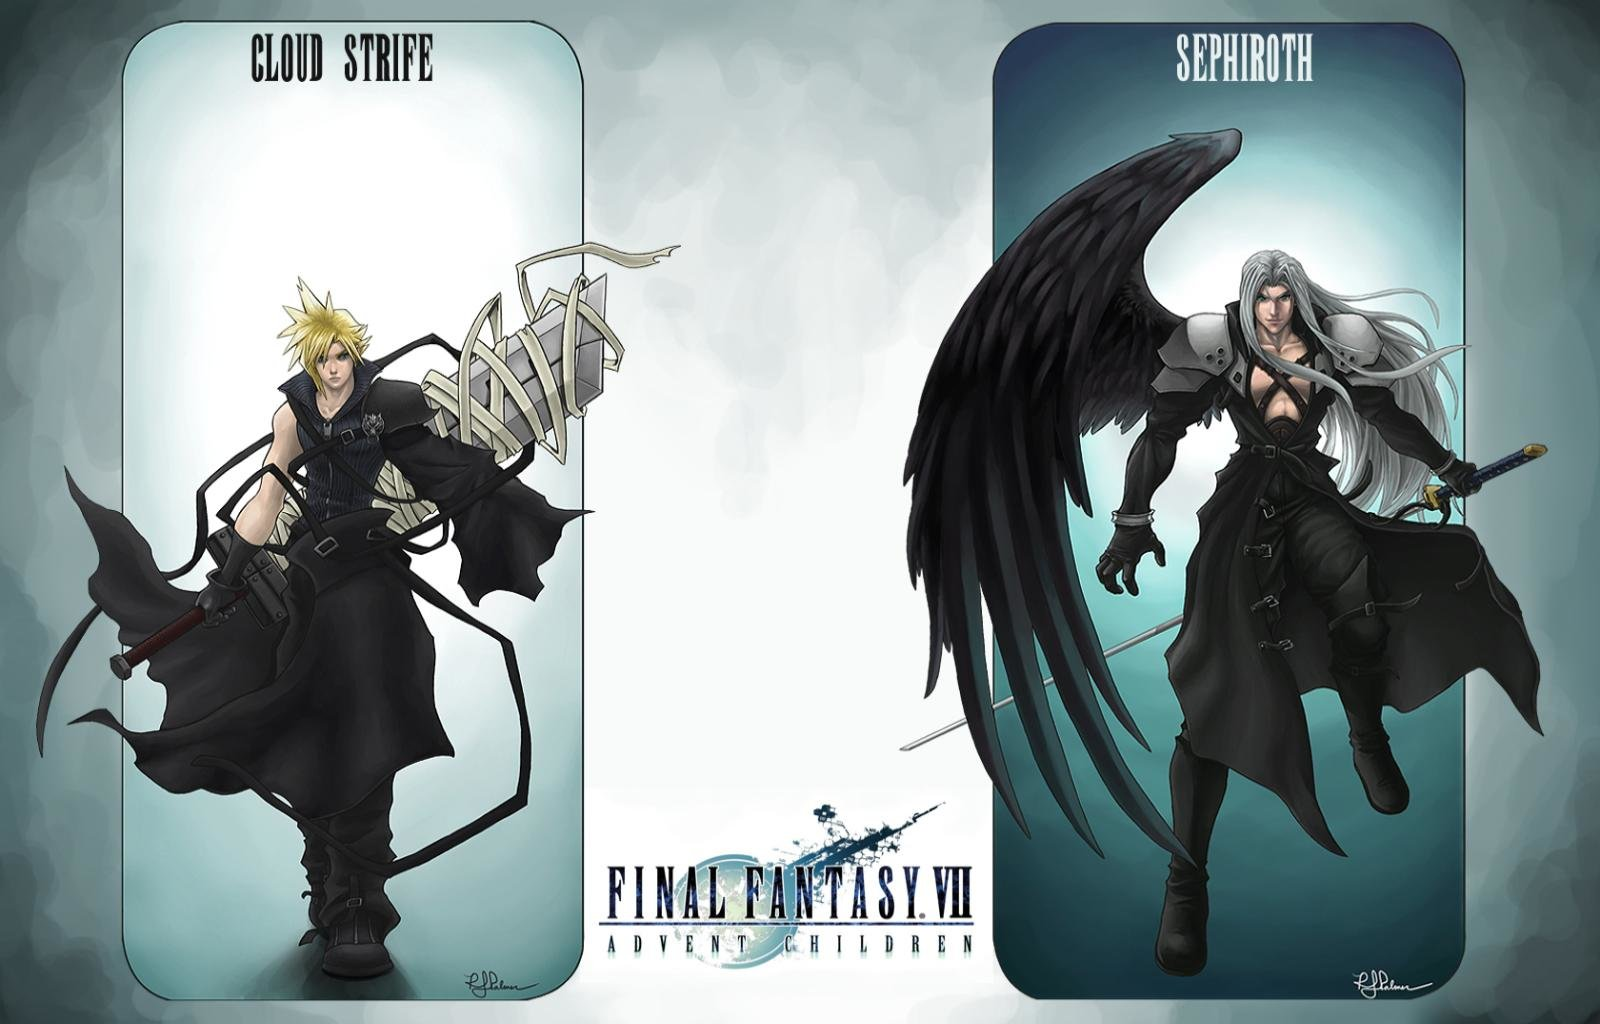 Final Fantasy Vii Ff7 Wallpapers Hd For Desktop Backgrounds